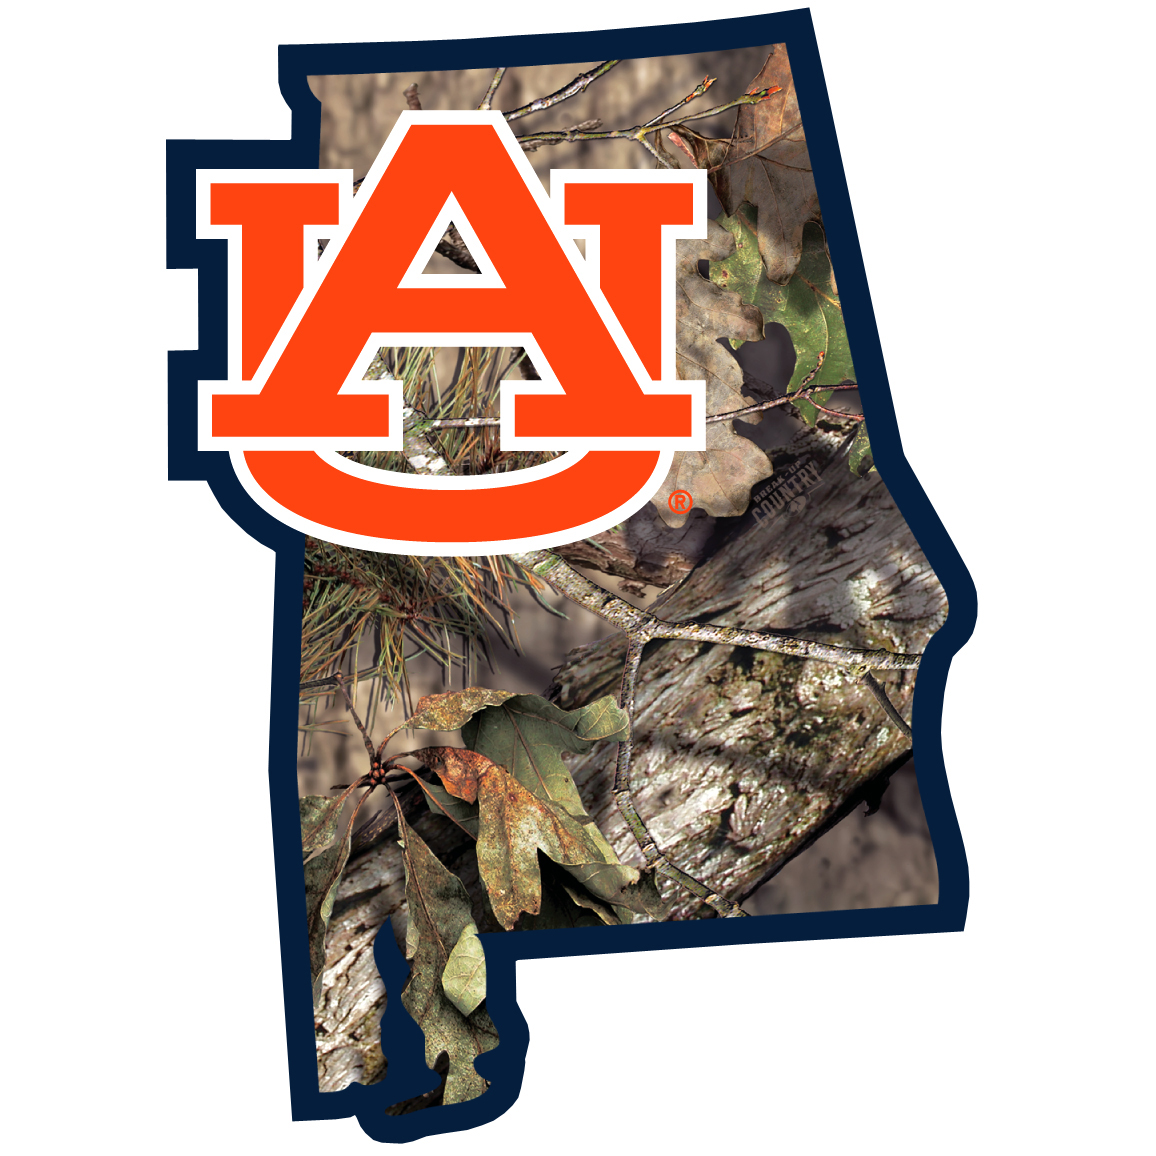 Auburn Tigers State Decal w/Mossy Oak Camo - It's a home state decal with a sporty twist! This Auburn Tigers decal features the team logo over a silhouette of the state in team colors and Mossy Oak camo and a helmet marking the home of the team. The decal is approximately 5 inches on repositionable vinyl.